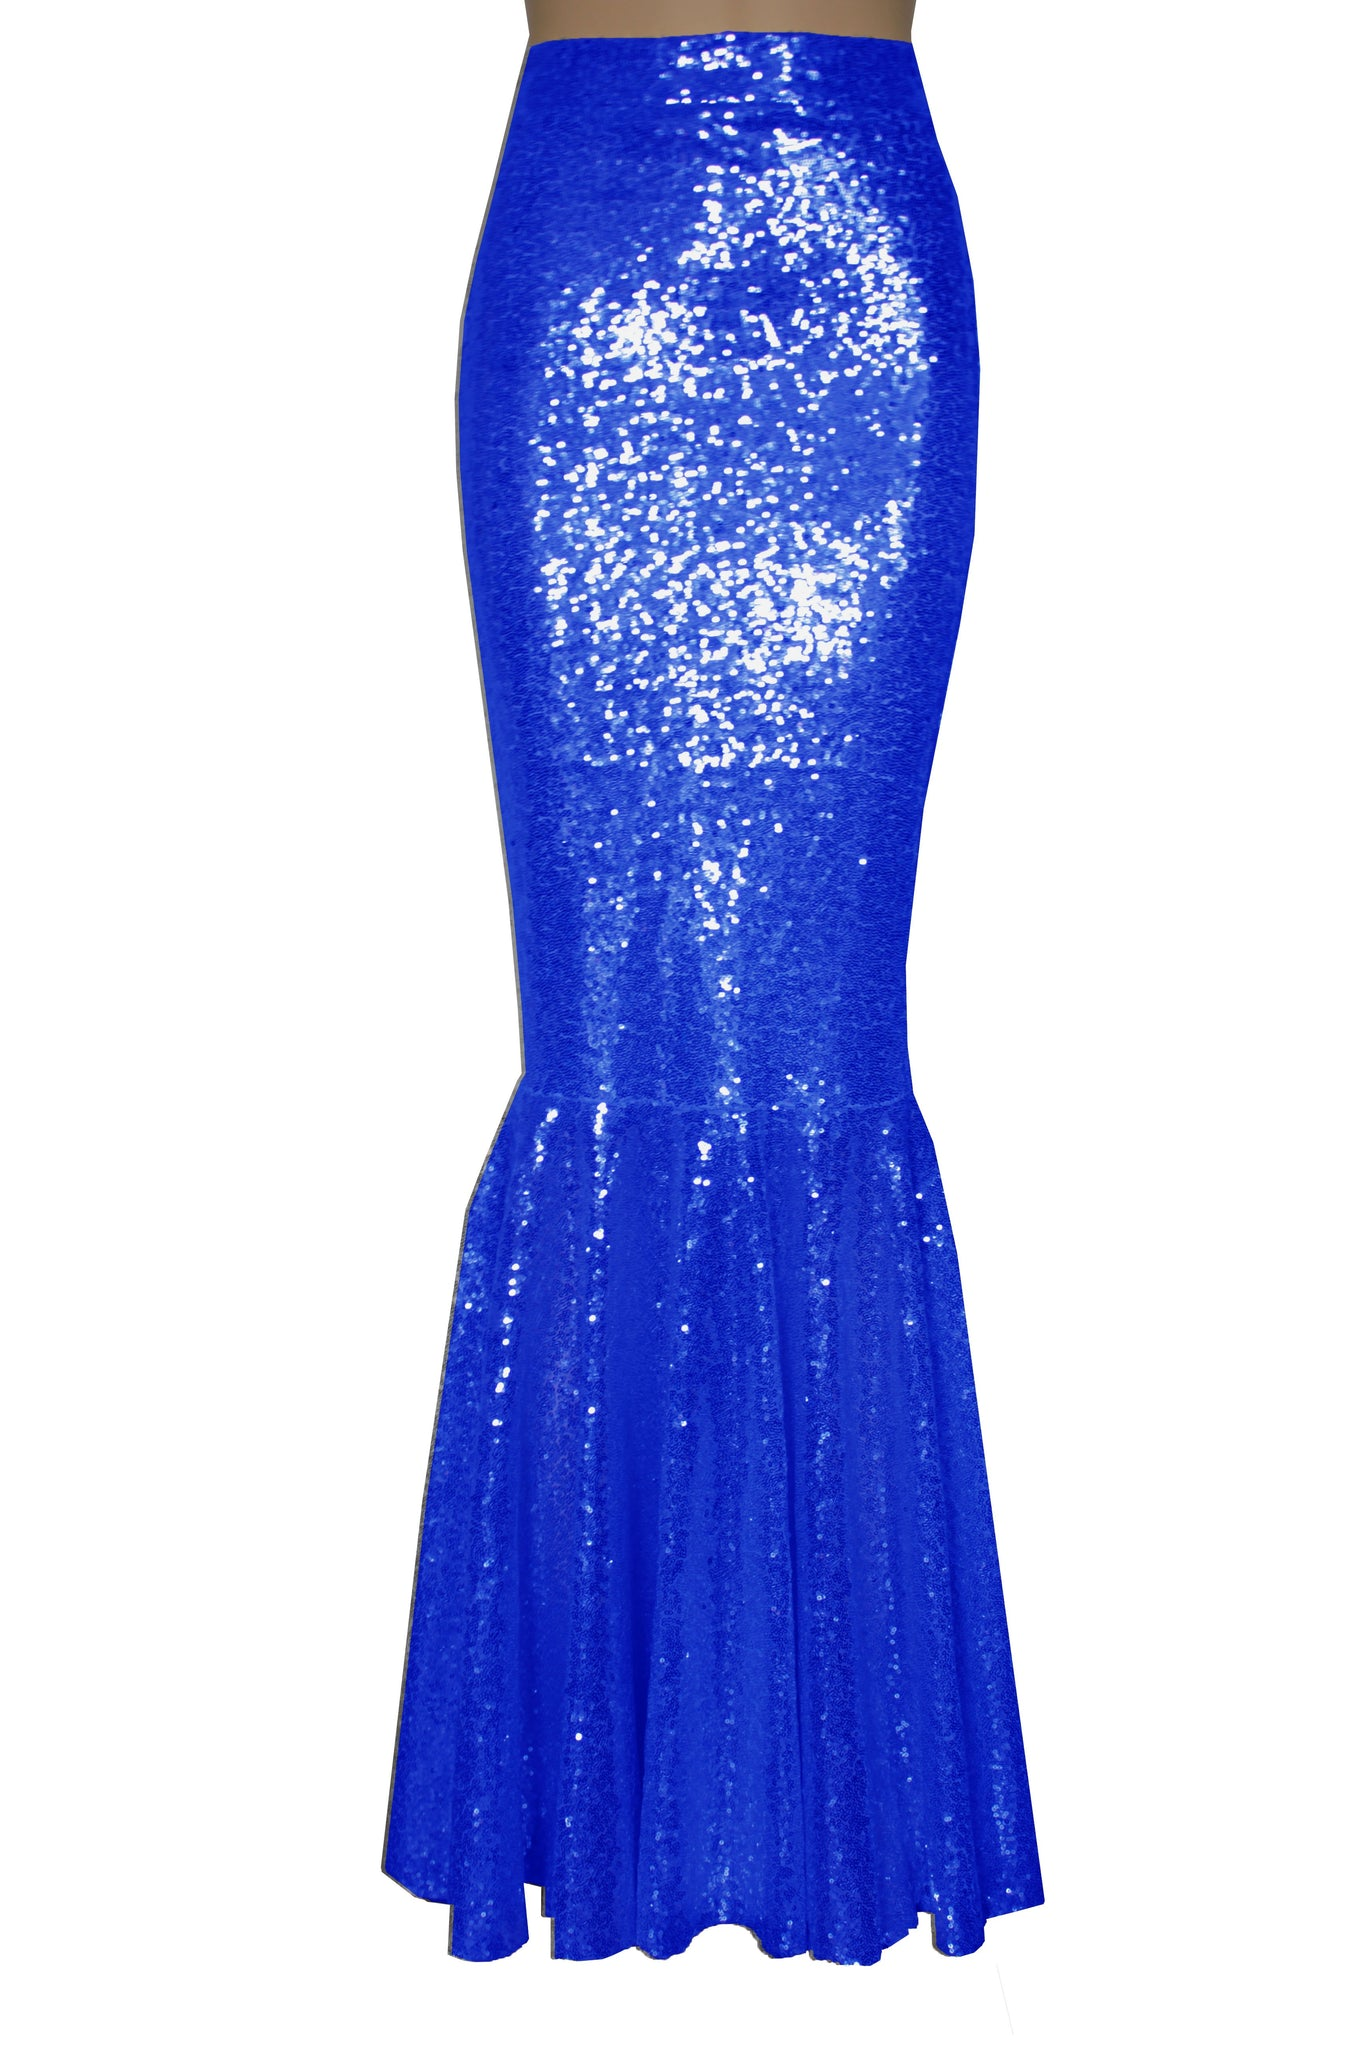 Mermaid Sequin Skirt Bridesmaid Royal Blue Bottoms Maxi Prom Skirt Fishtail Plus Size Metallic Bottoms Formal Skirt XS-5XL